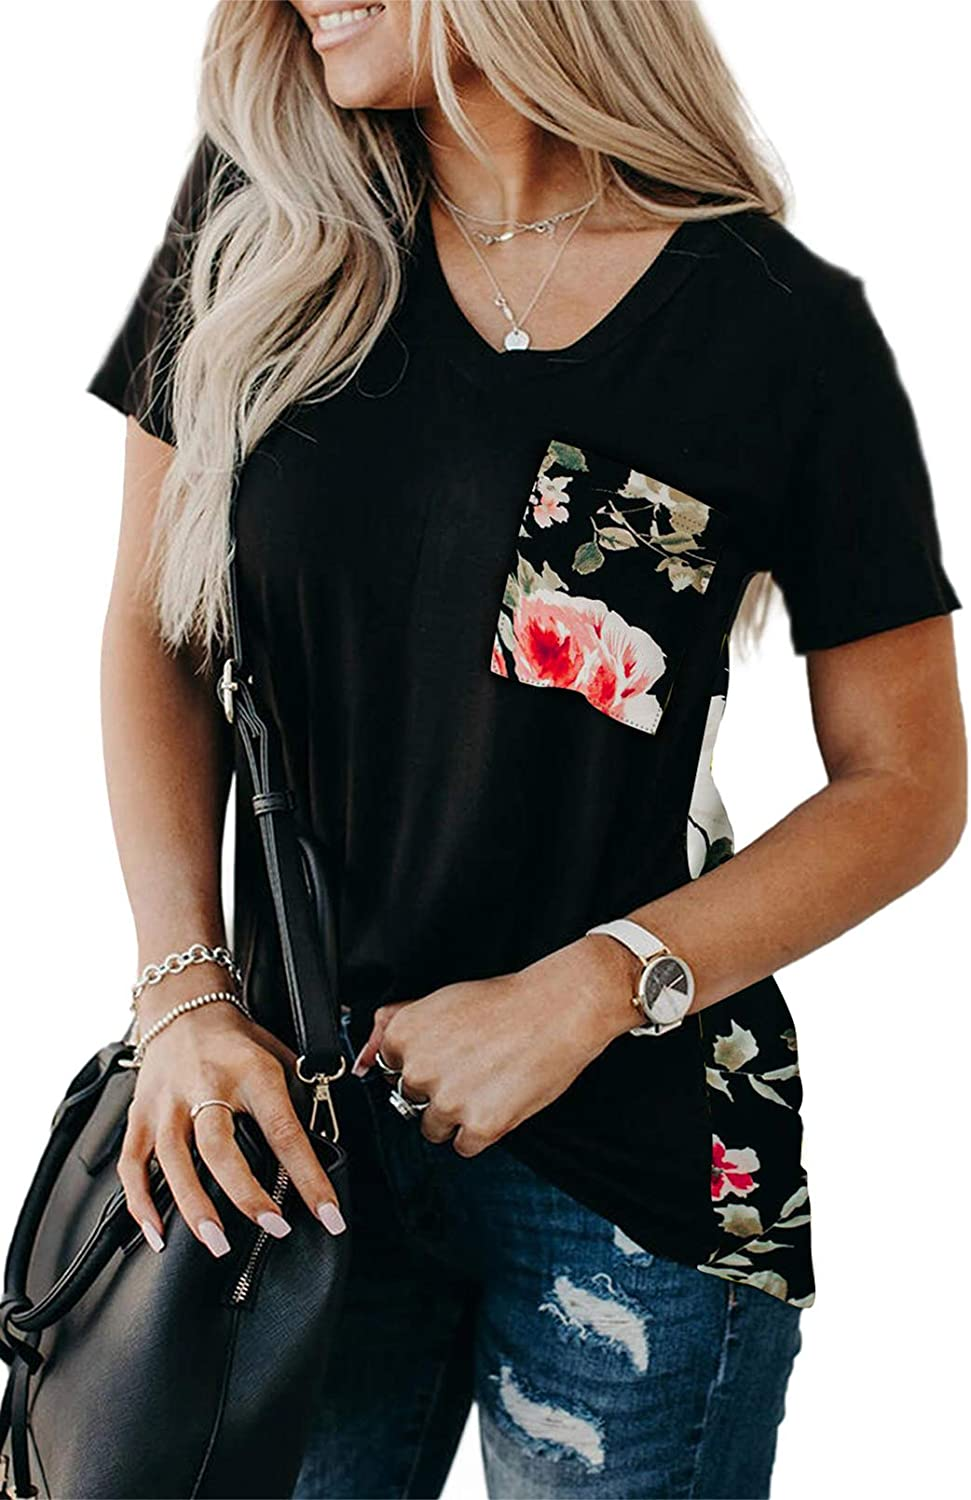 LOSRLY Womens V Neck Short Sleeve Shirts Tie Dye Leopard Summer T Shirts Casual Tunic Blouses and Top